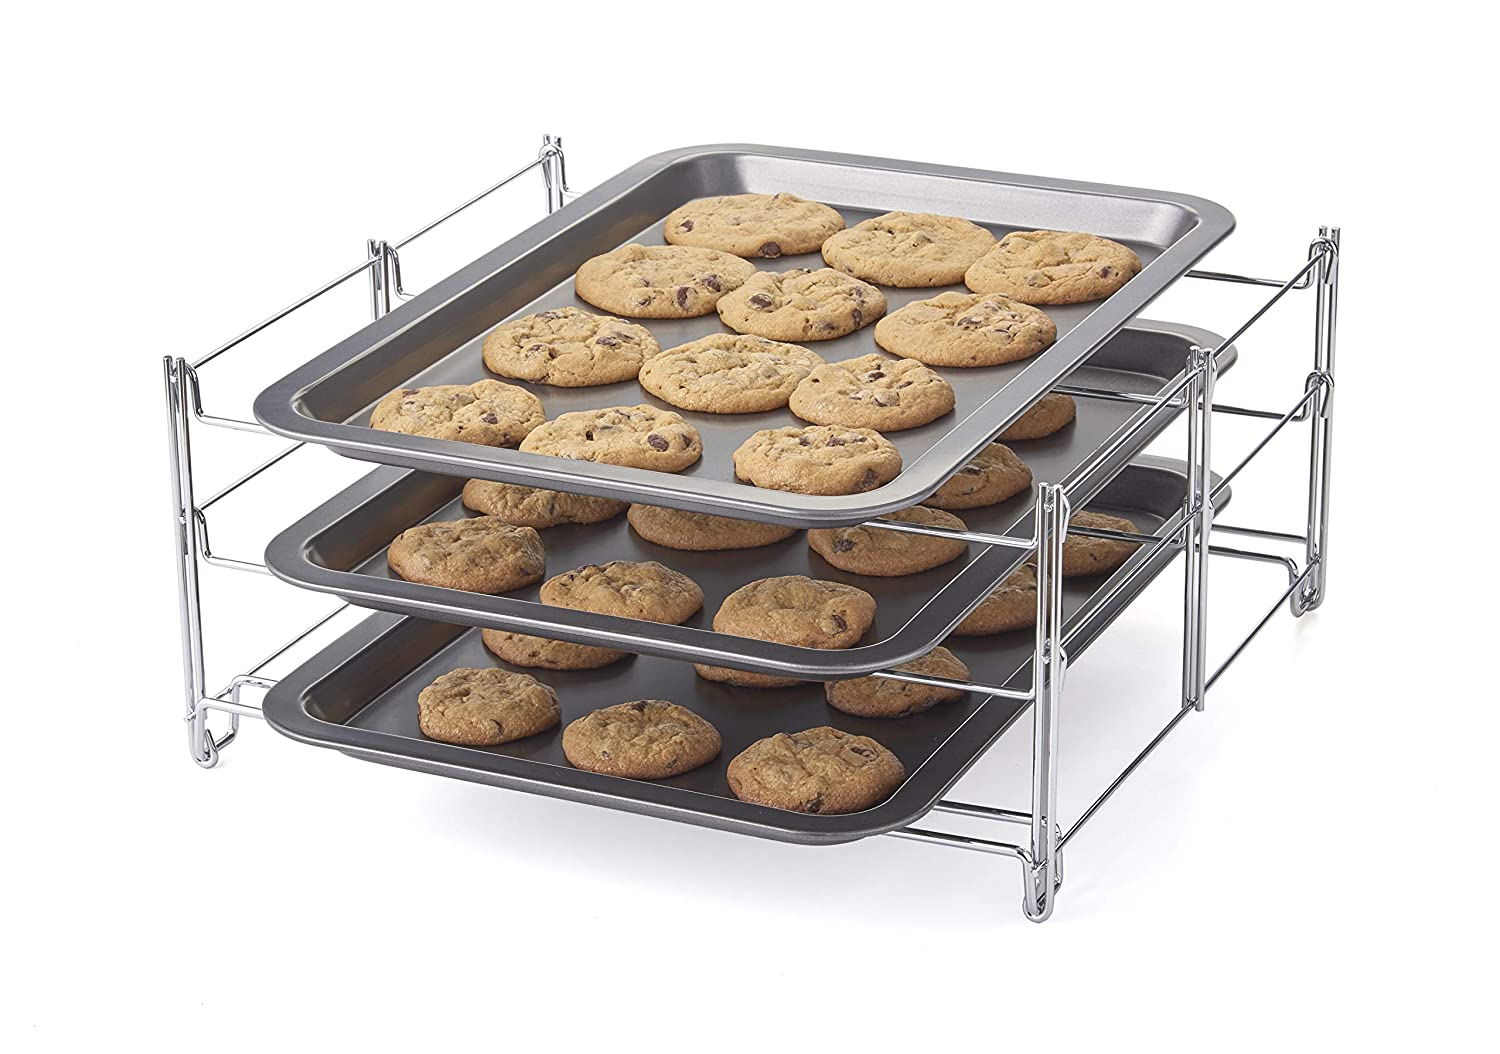 Betty Crocker Tier Insert with 3 Non-Stick Cookie Sheets Baking Rack, One Size, Charcoal and Chrome